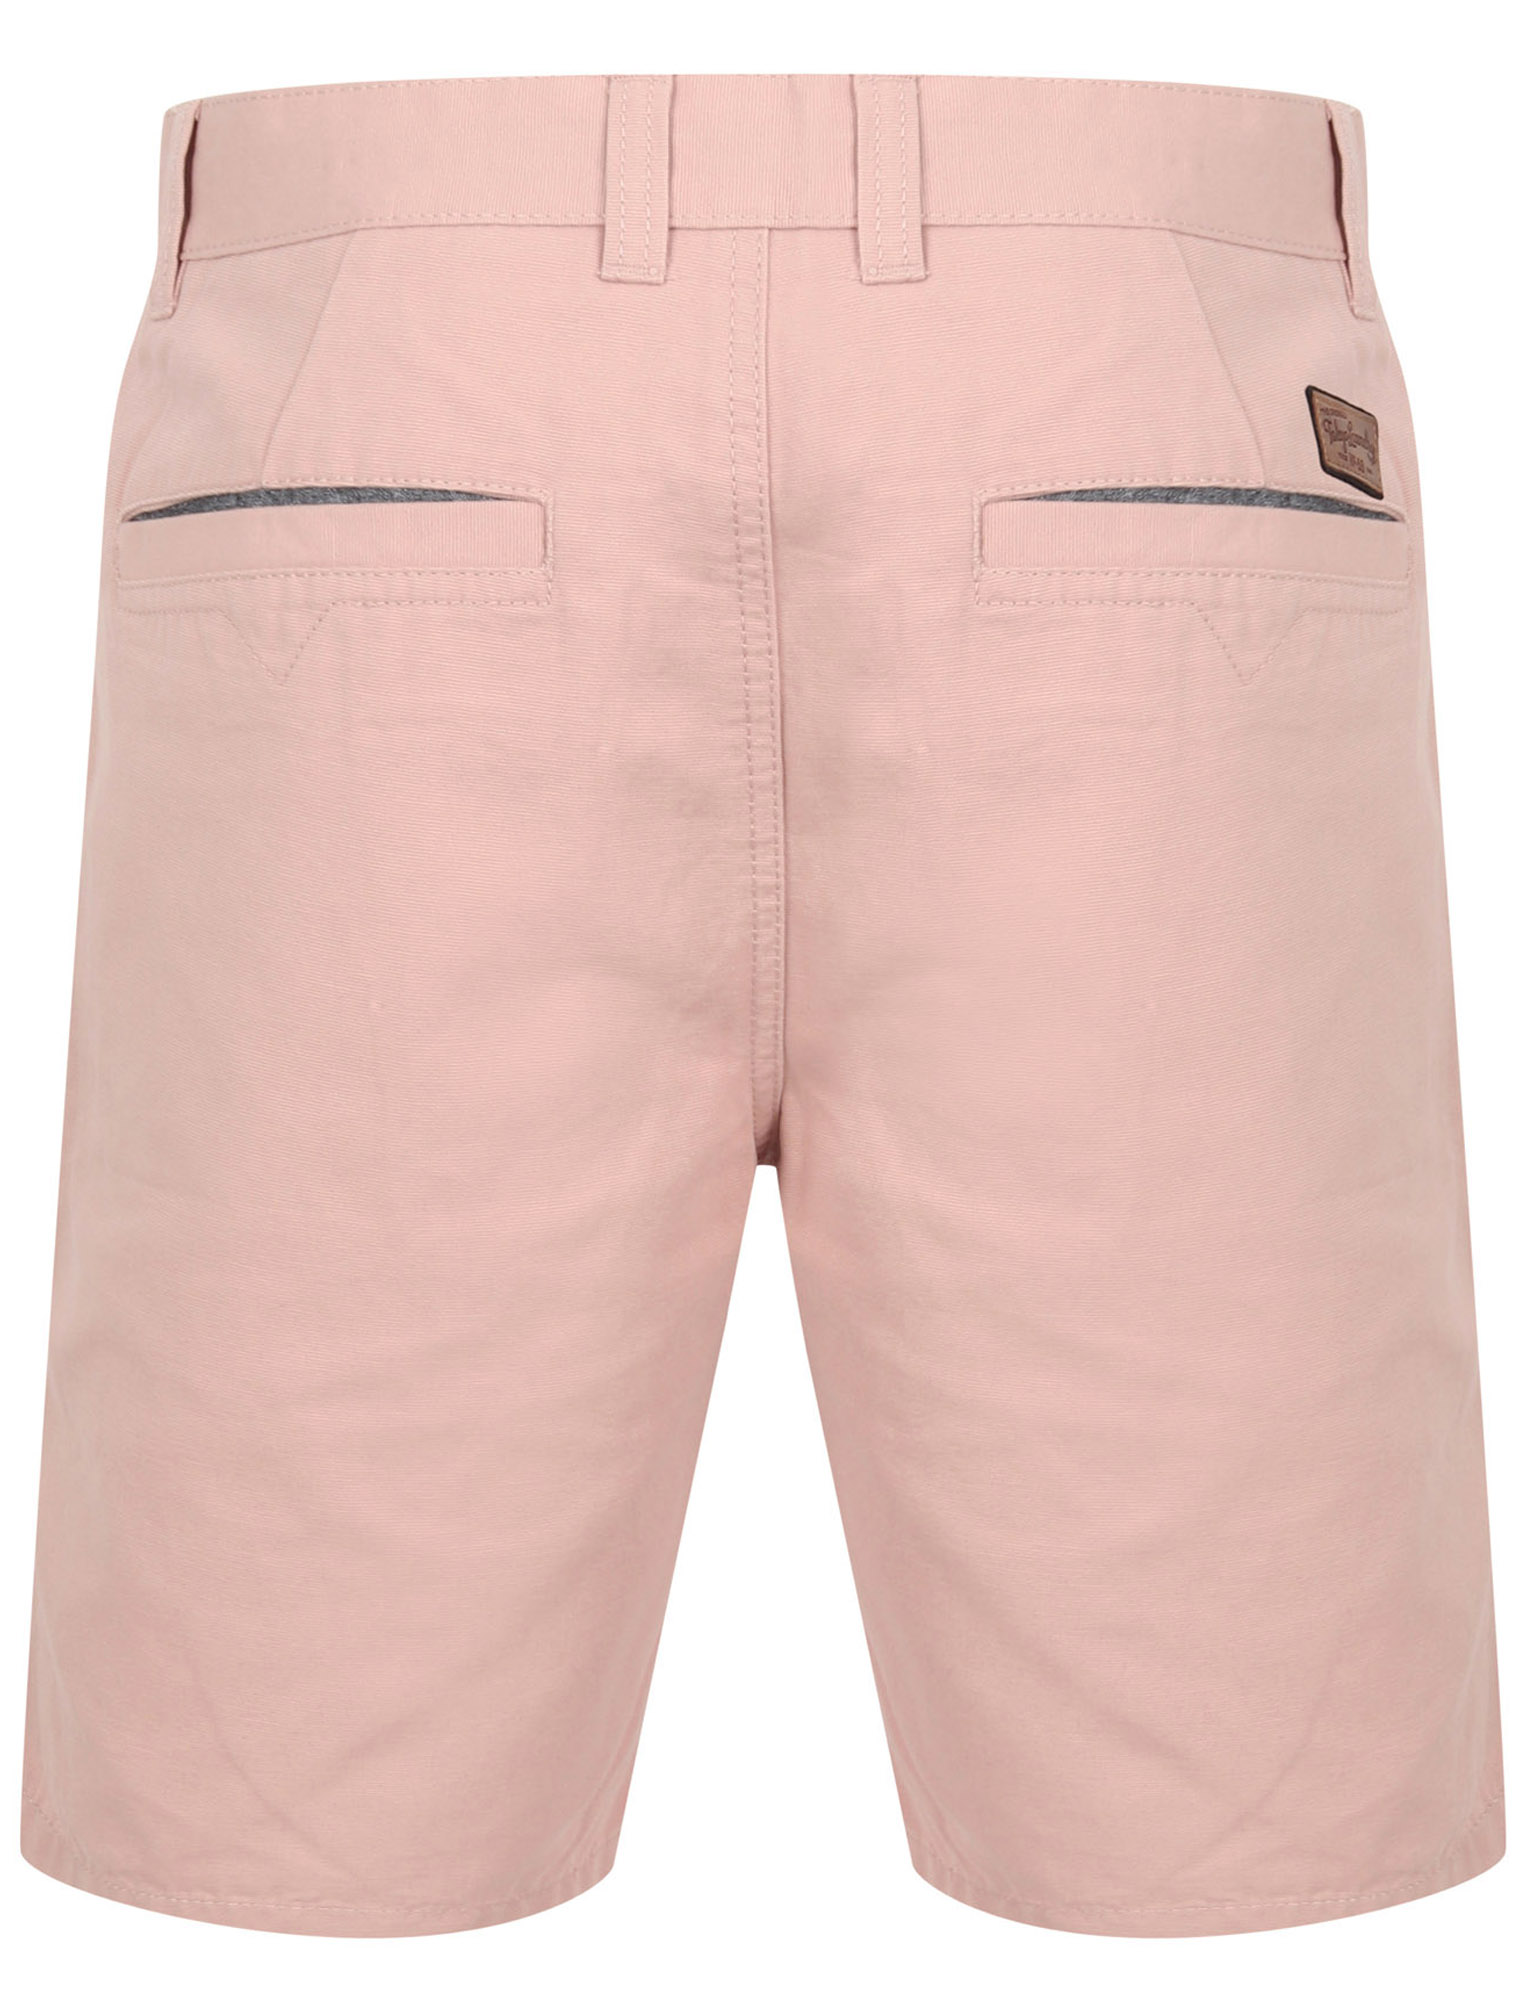 Tokyo-Laundry-Men-039-s-Delgada-Chino-Shorts-Smart-Summer-Casual-Jean-Size-S-XXL thumbnail 6